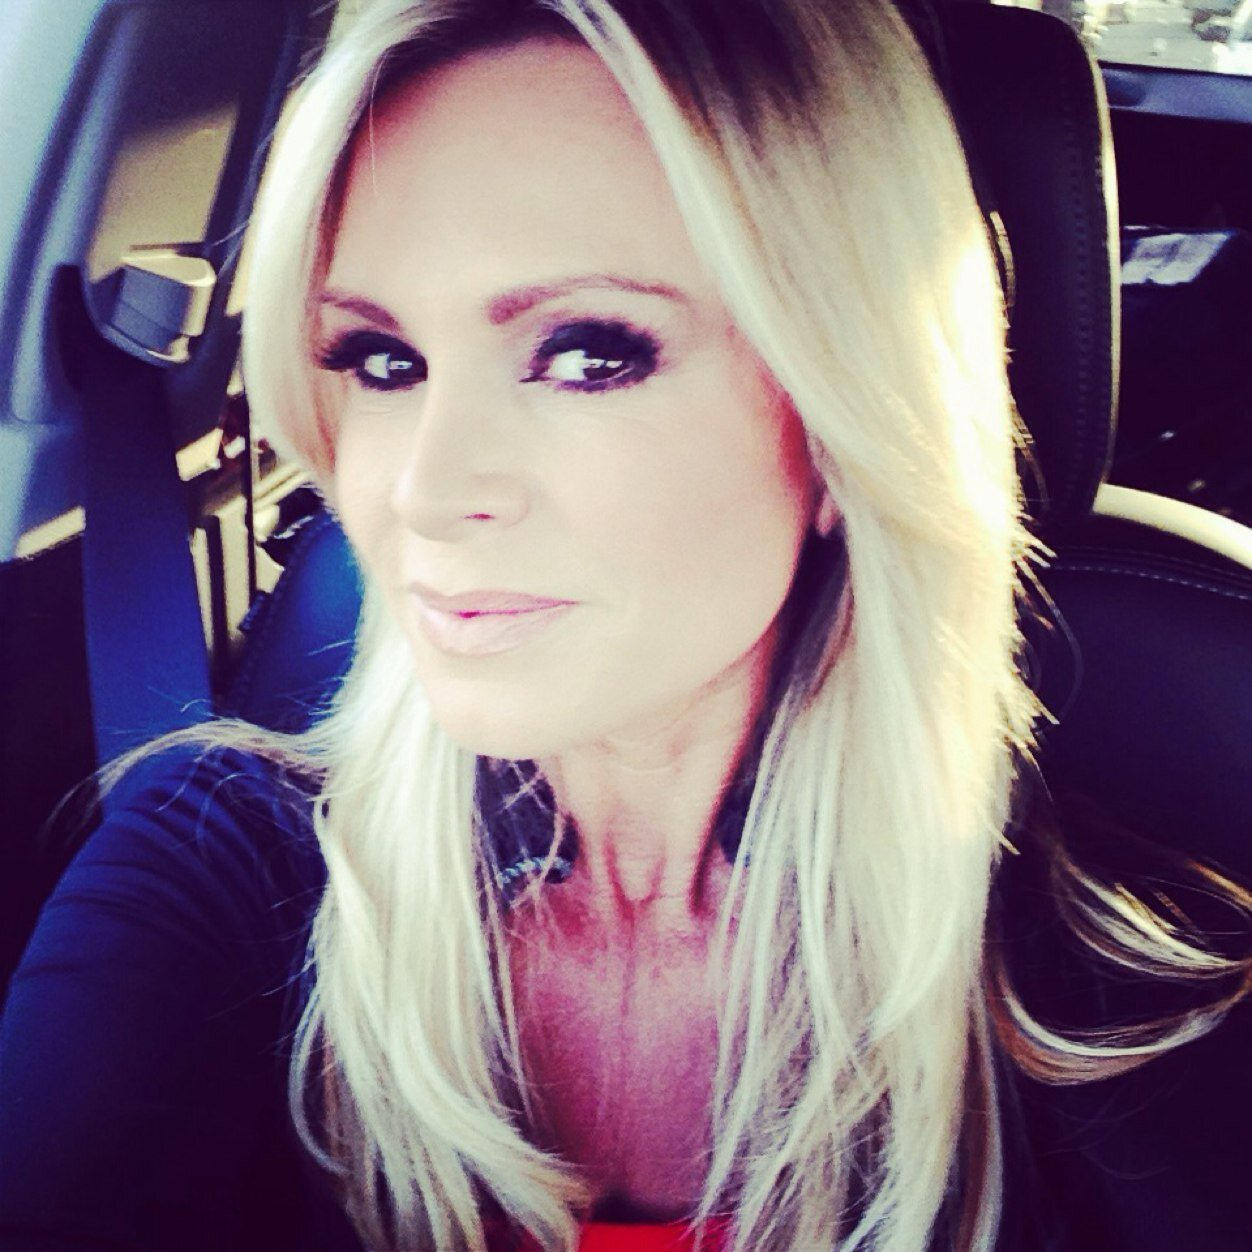 exclusive: tamra judge- she can call me whatever she wants - www